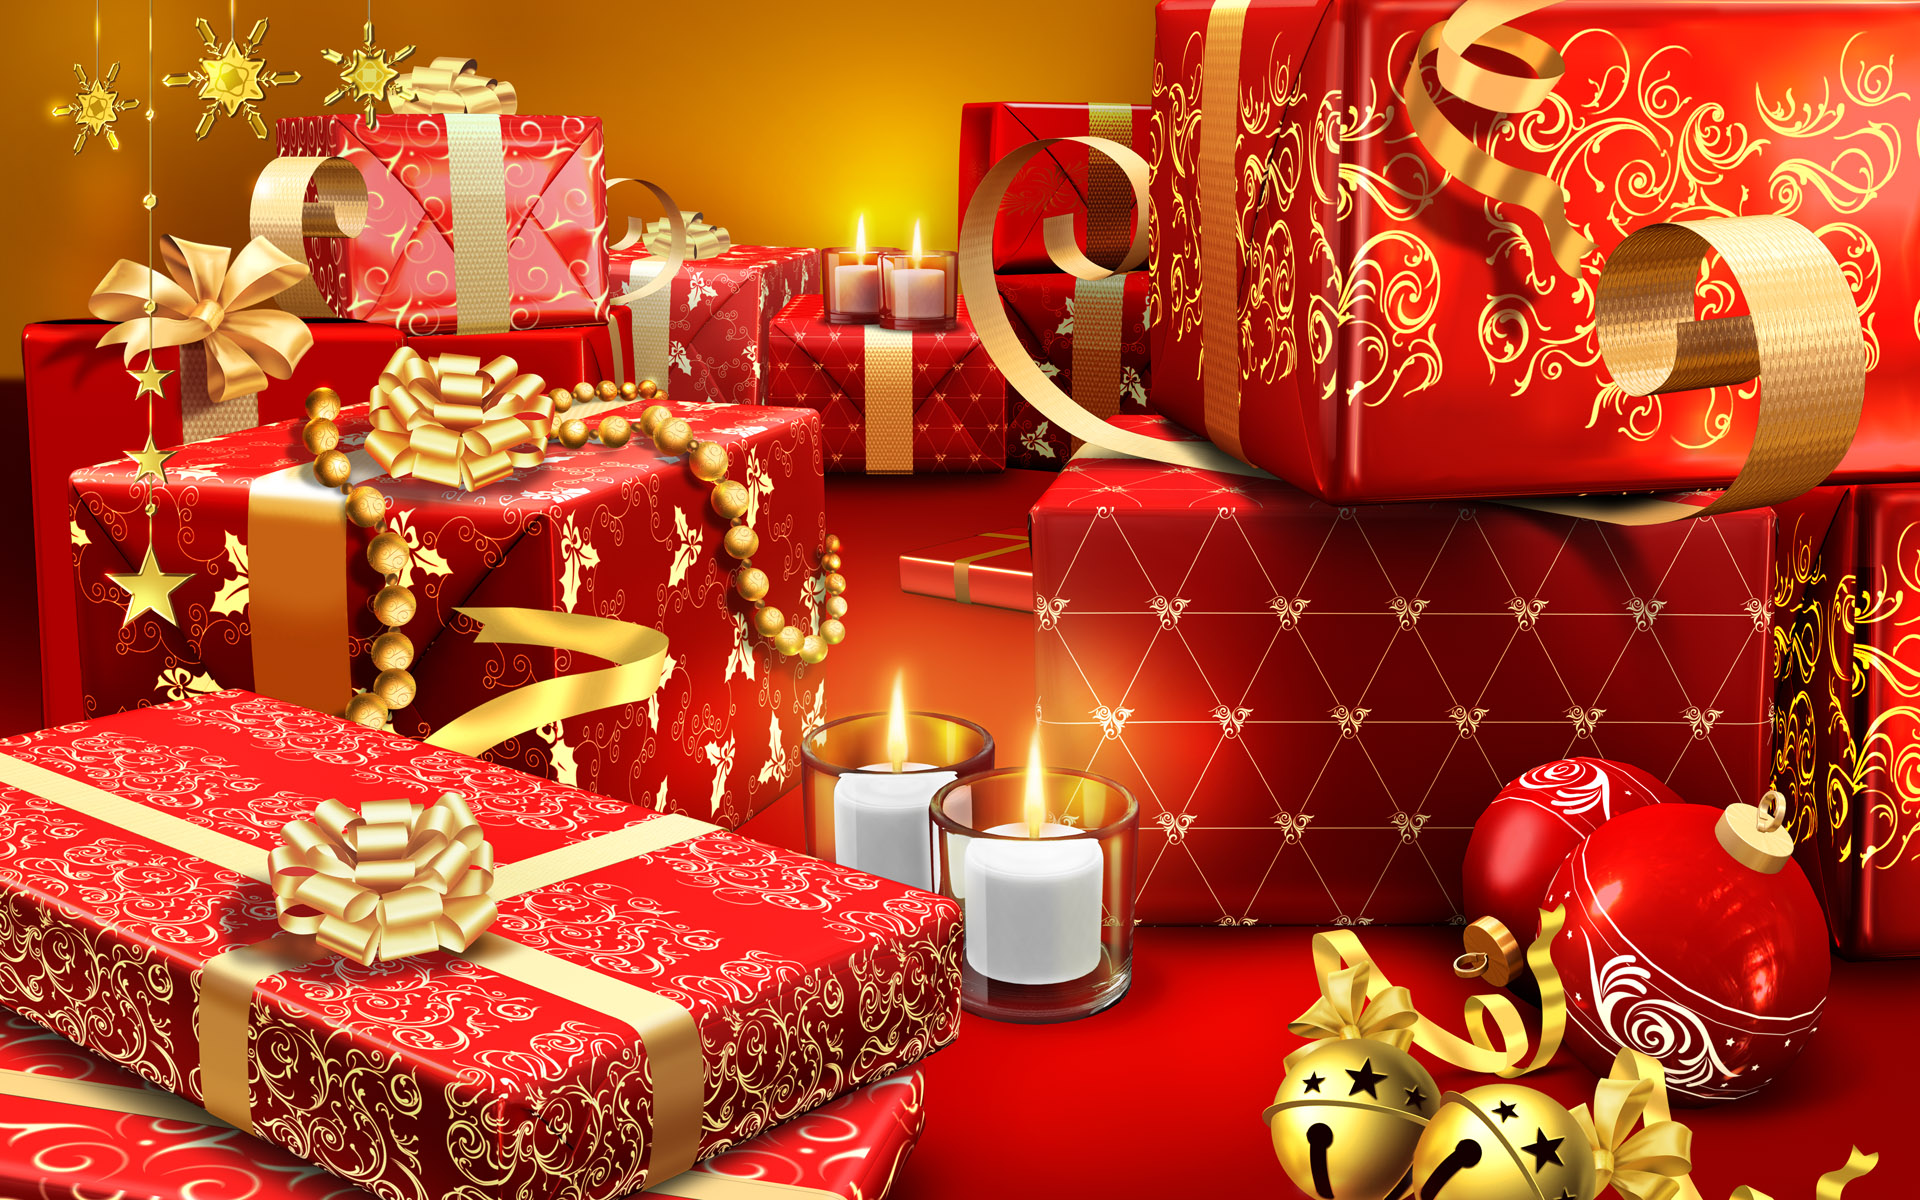 Best Christmas Gift Ideas Pictures Wallpapers